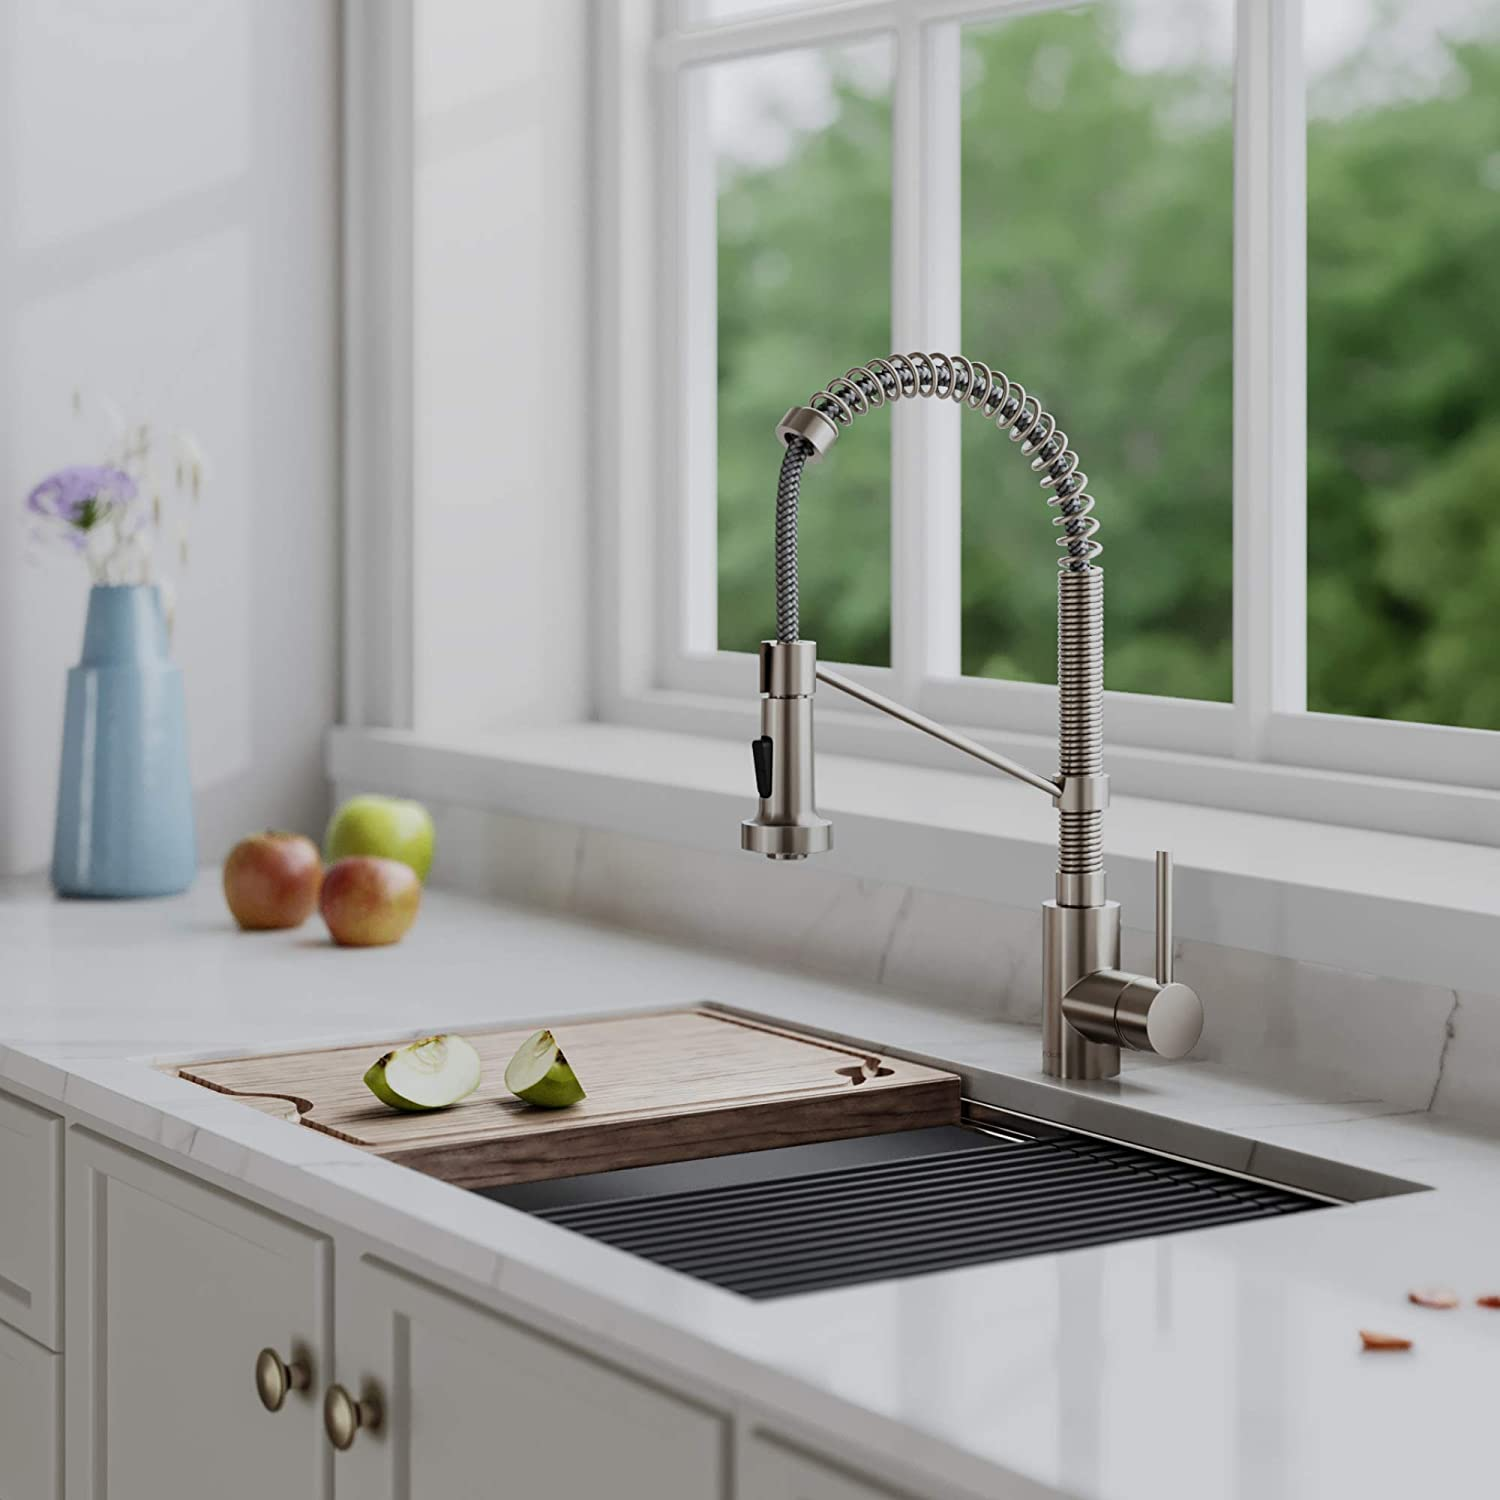 Kraus KPF-1610SFS Bolden 18-Inch Commercial Kitchen Faucet with Dual Function Pull-Down Sprayhead in all-Brite Finish, Spot Free Stainless Steel